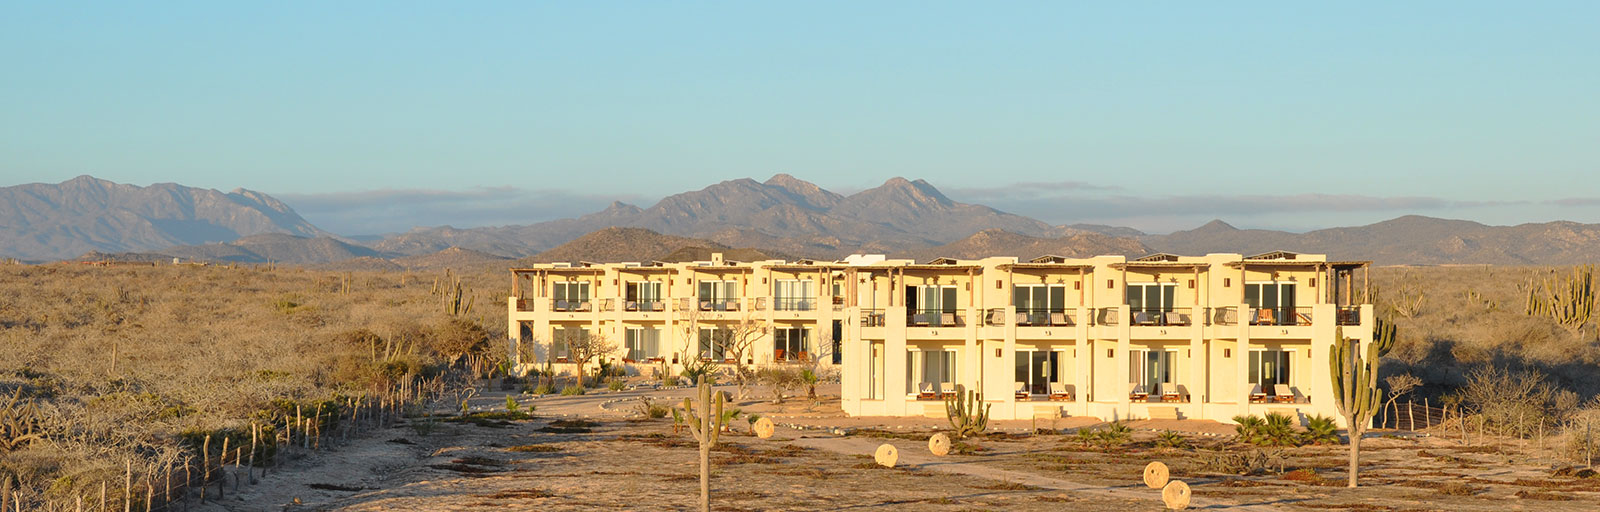 Mexico Yoga Retreat Center in Baja: Guest Rooms and Mountains